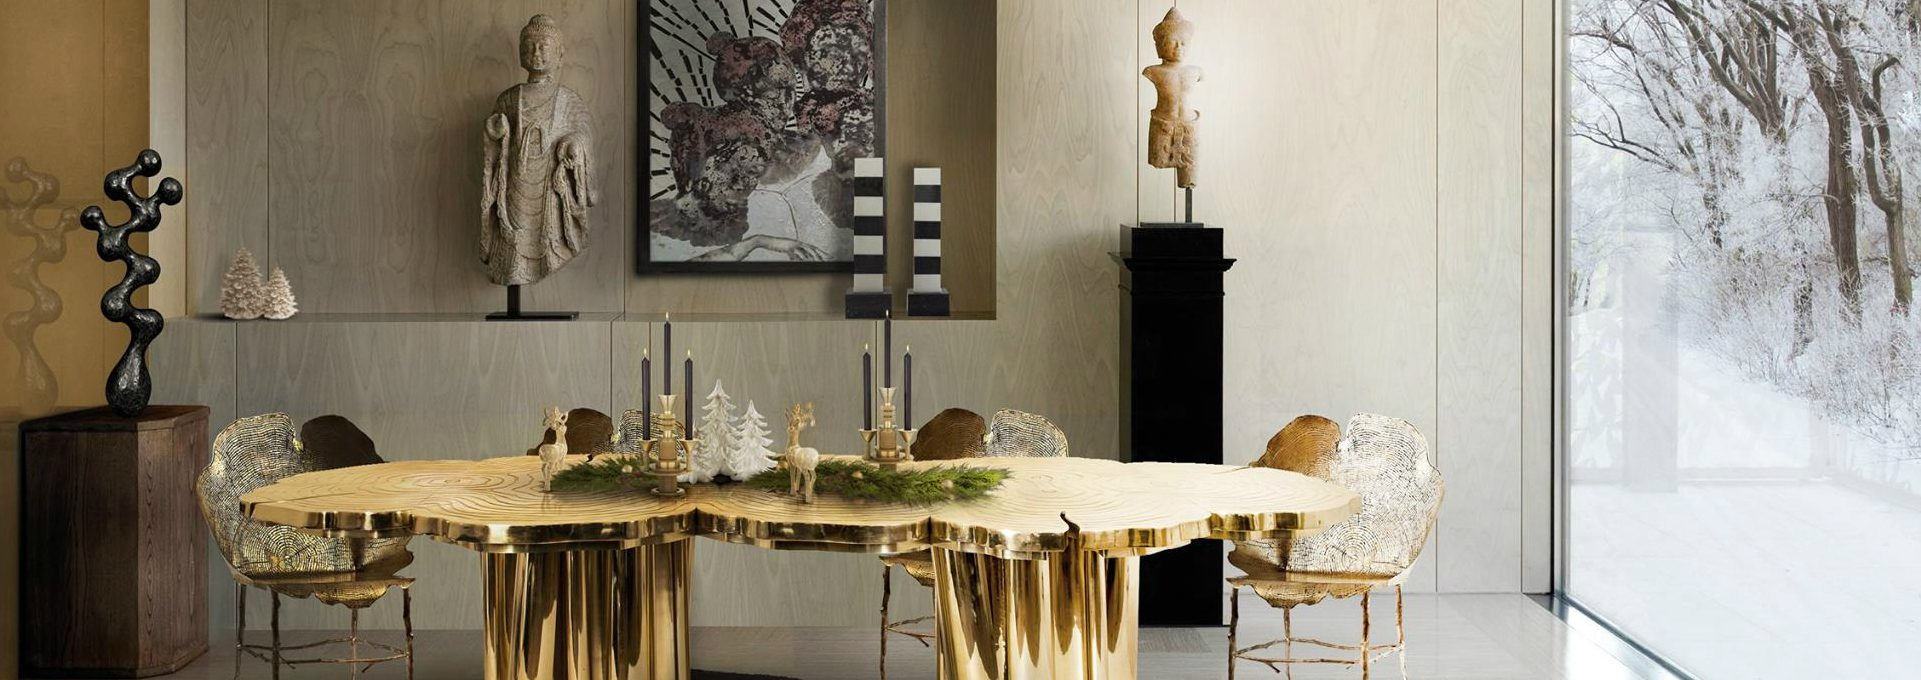 Roche Bobois Paris 7 7 must-see showrooms at maison et objet september paris 2017